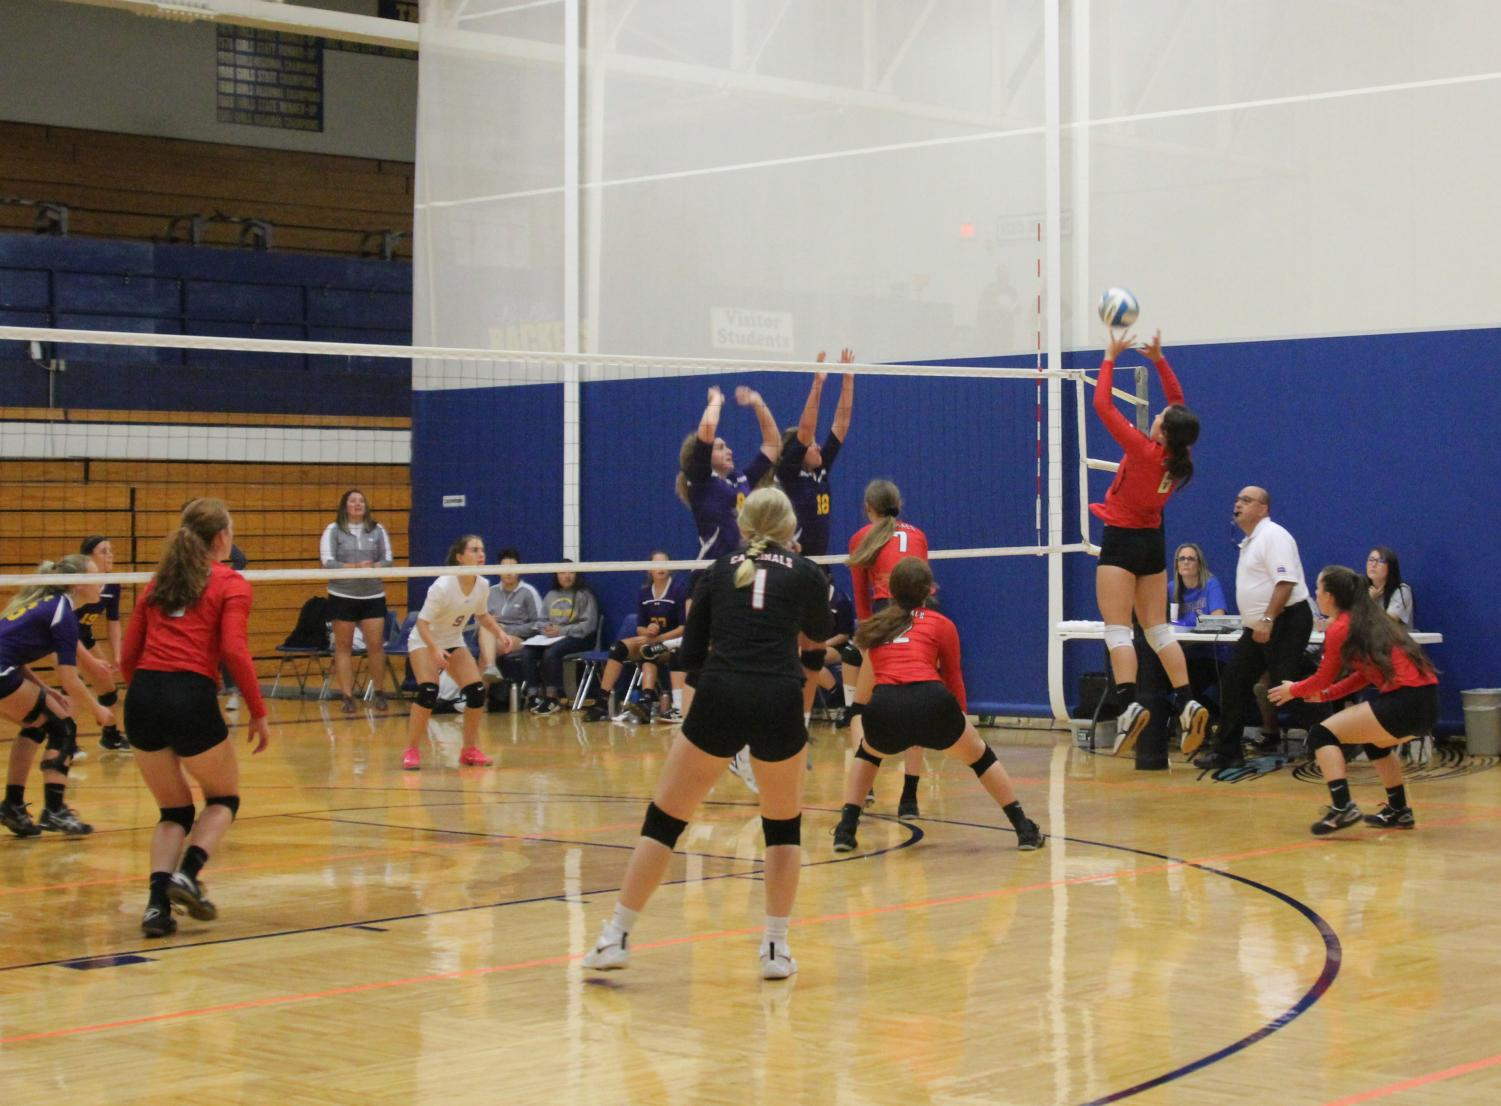 At the tournament held in Chaparral on Sept. 21, senior Karley Mooneyham tips the ball over the net.